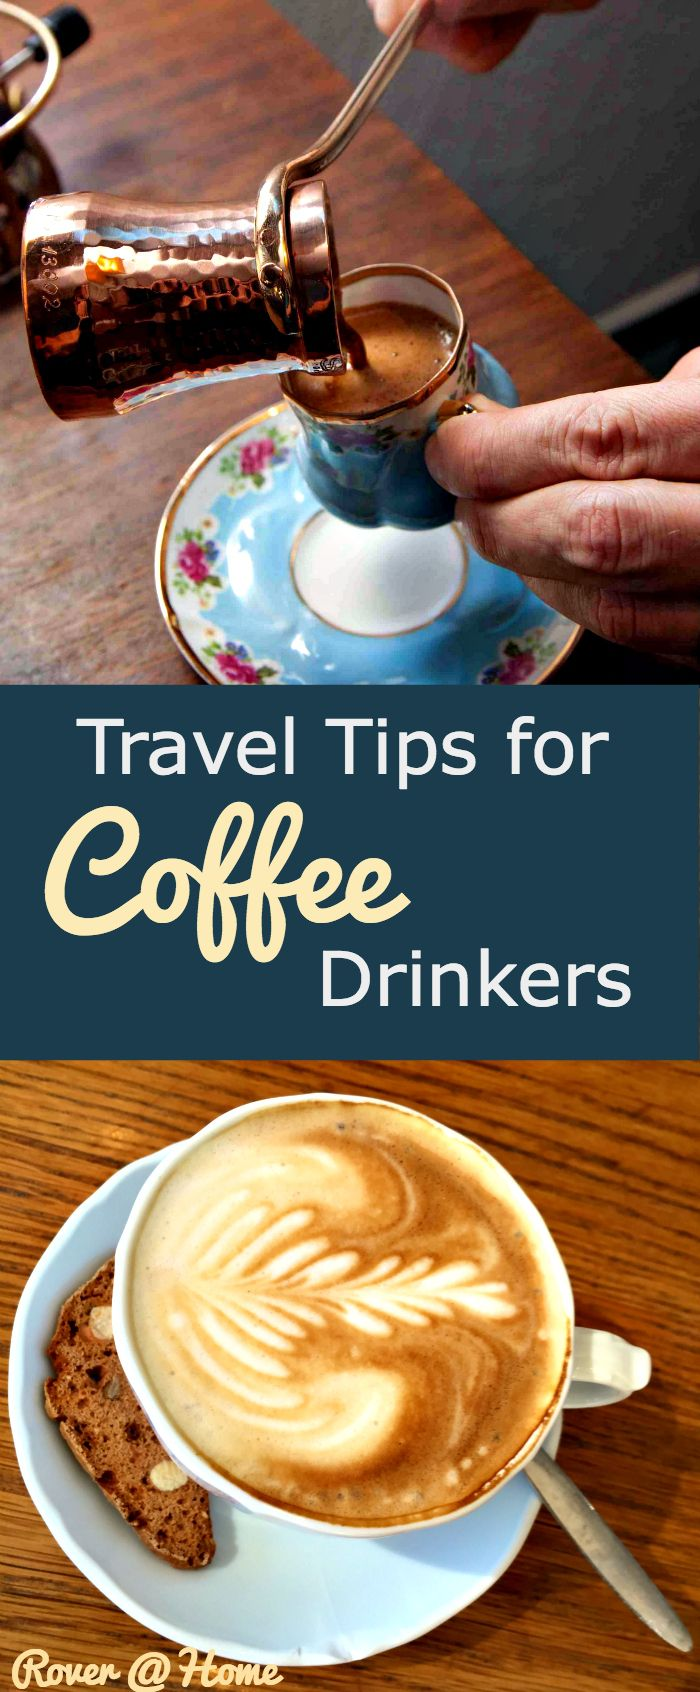 Travel Tips for Coffee Drinkers on Travel & Lifestyle Blog Rover@Home